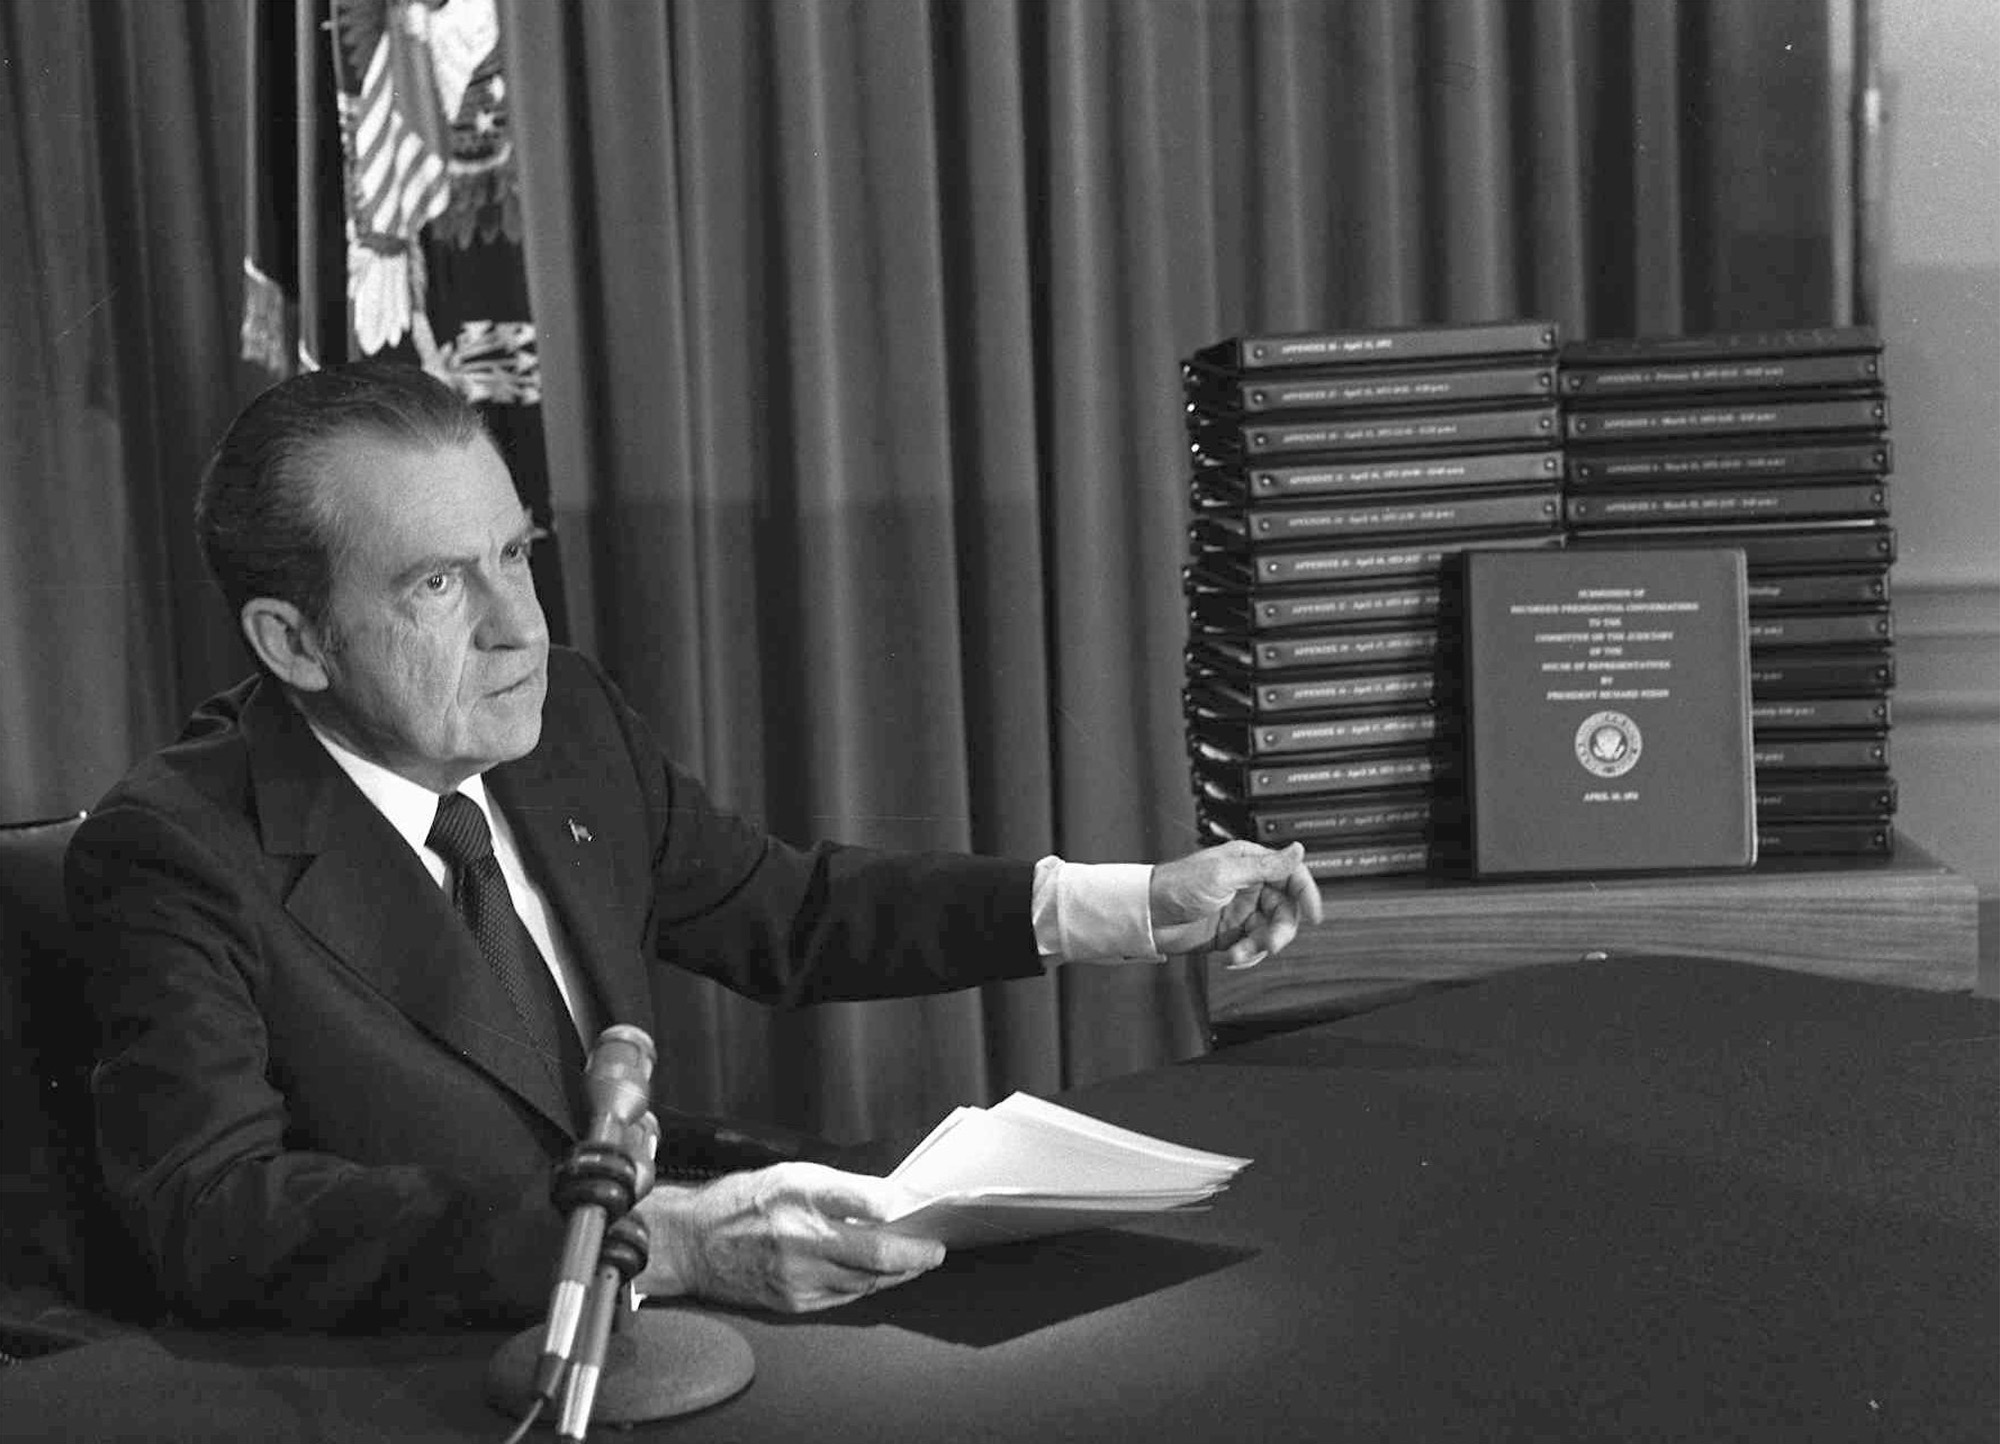 FILE - President Richard M. Nixon is shown pointing to the transcripts of the White House tapes in this April 29, 1974 photo, after he announced during a nationally-televised speech that he would turn over the transcripts to House impeachment invesig...